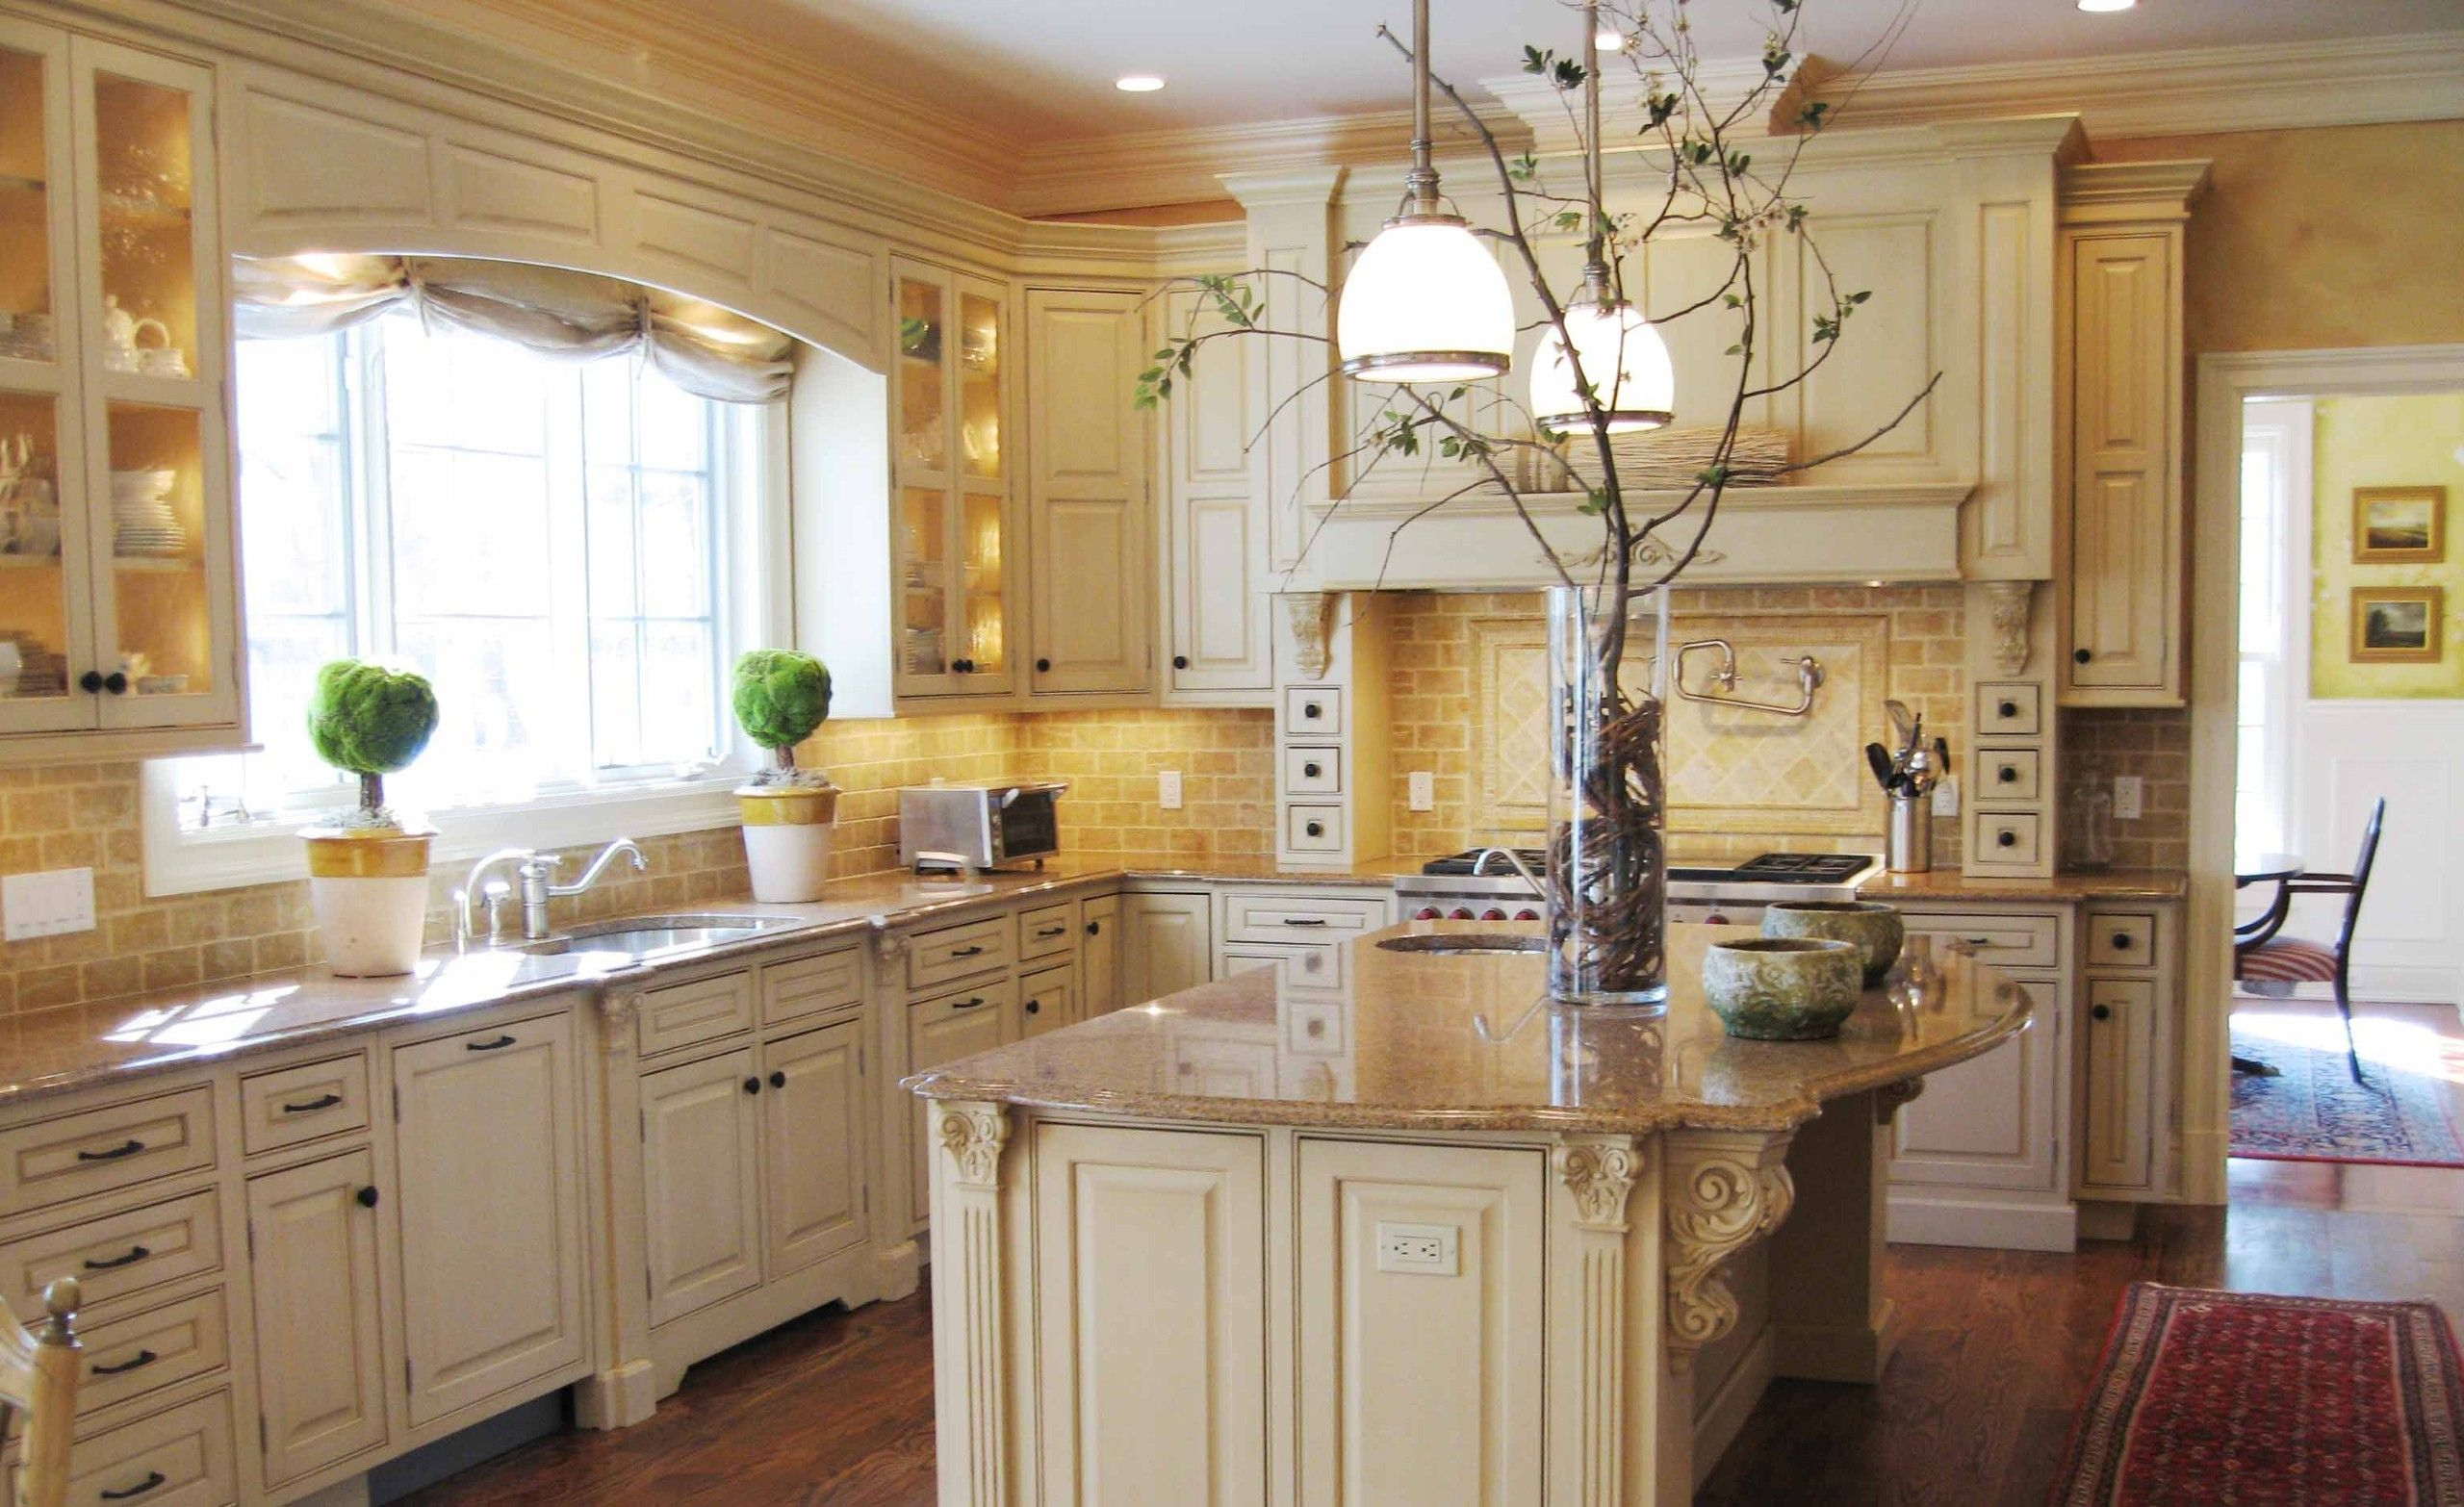 Terrific french country kitchen decor with broken white French country kitchen decor